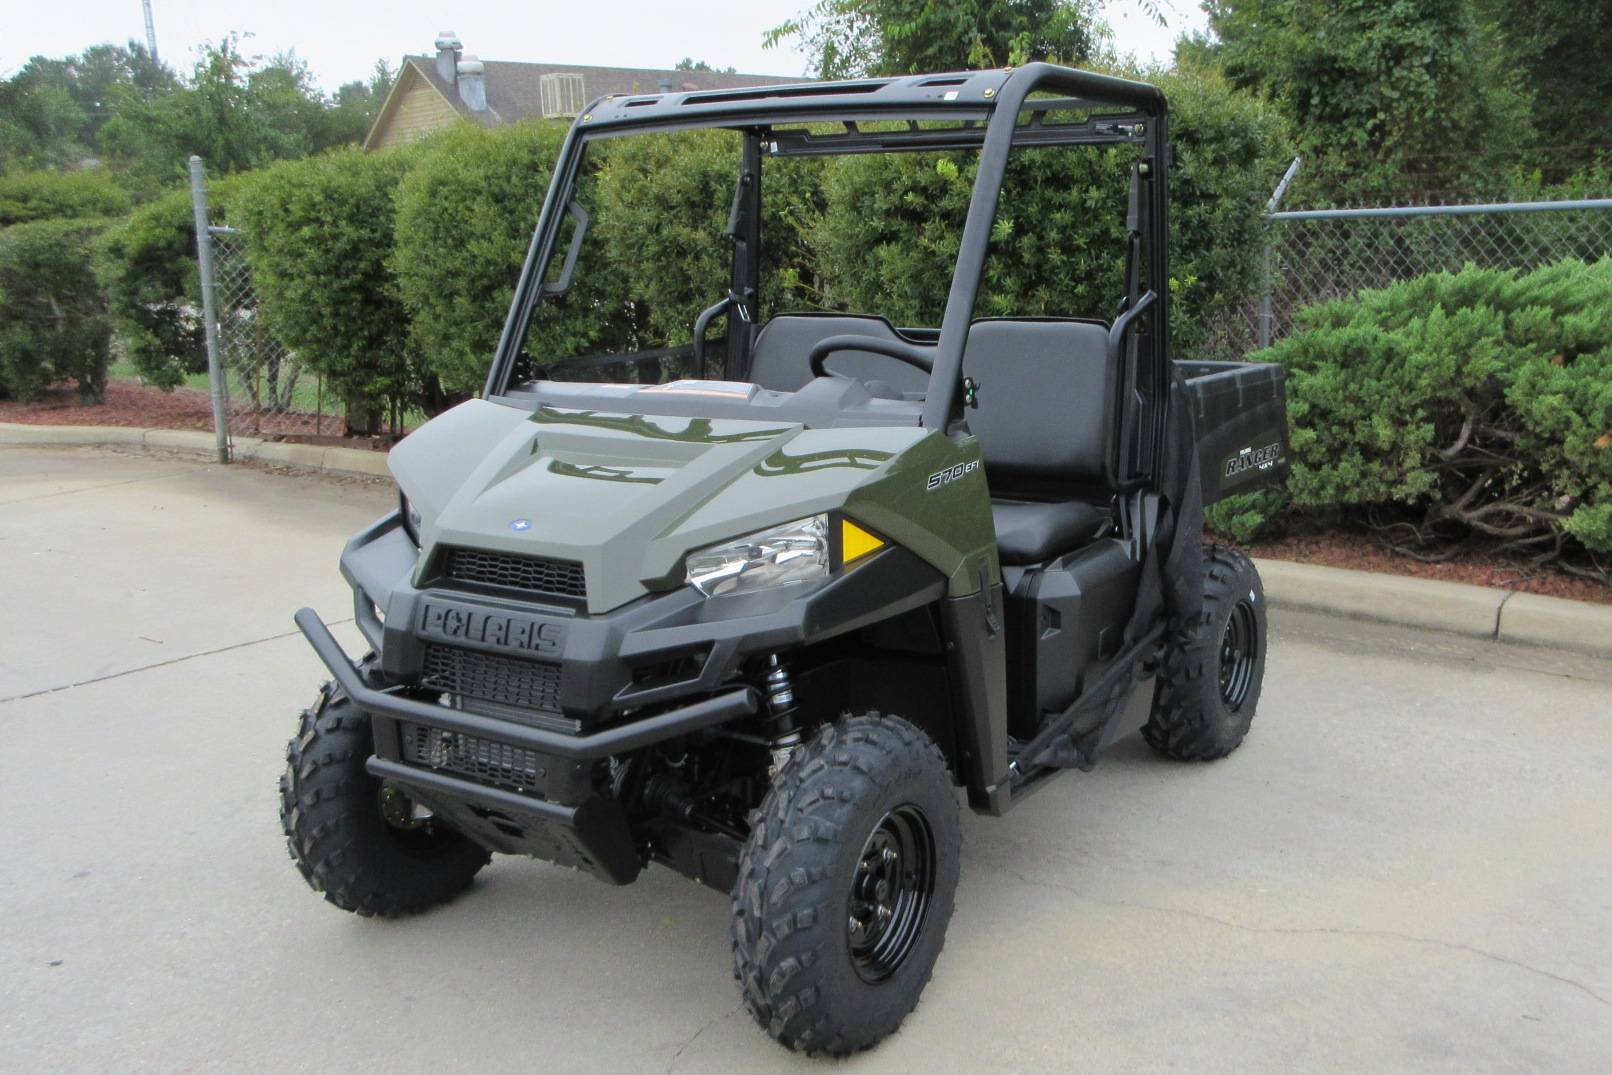 2019 Polaris Ranger 570 in Sumter, South Carolina